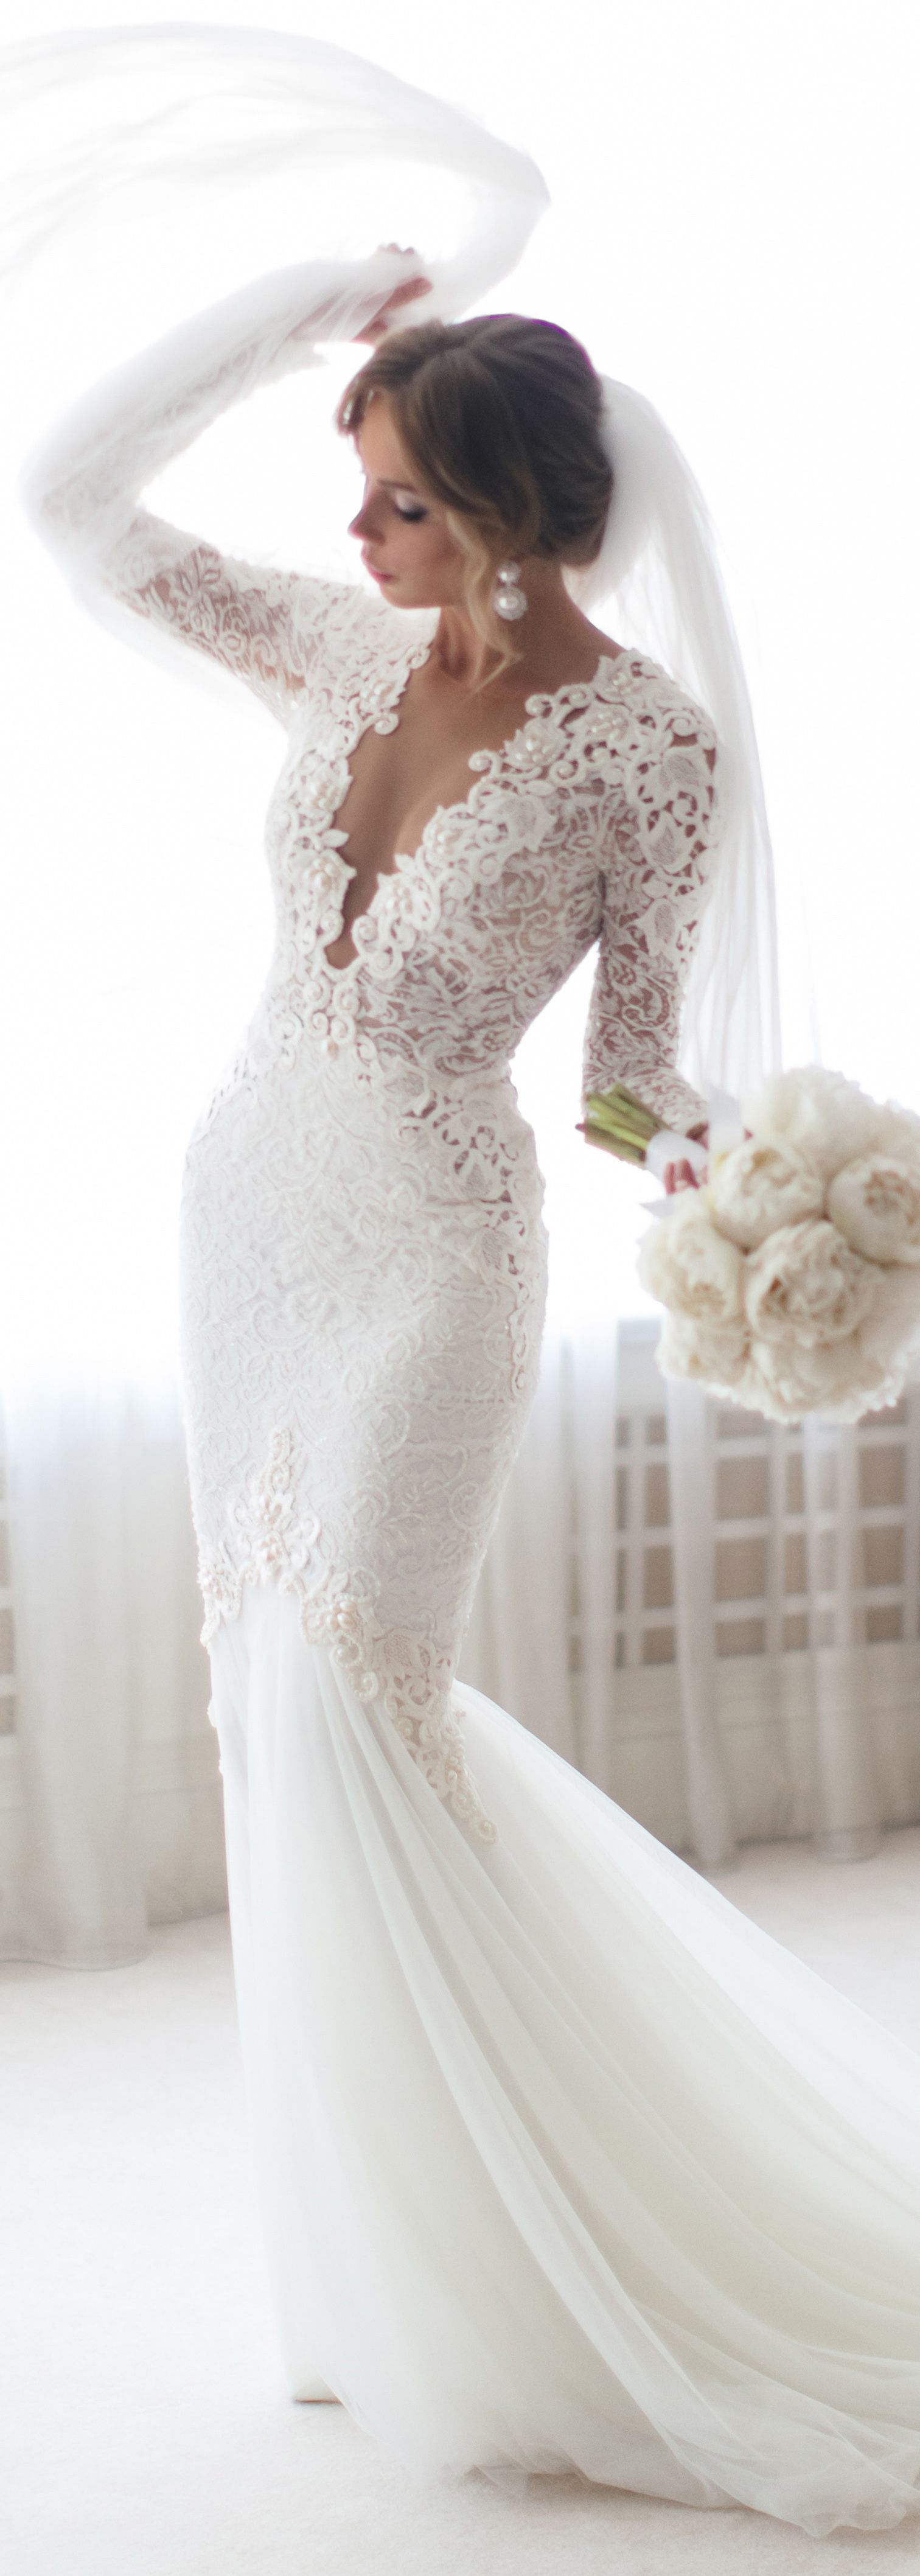 Floral Guipure Lace Mermaid Wedding Dresses With Long Sleeves Vw1314 In 2021 Boho Wedding Dress Lace Wedding Dresses Long Sleeve Wedding Dress Lace [ 1200 x 675 Pixel ]